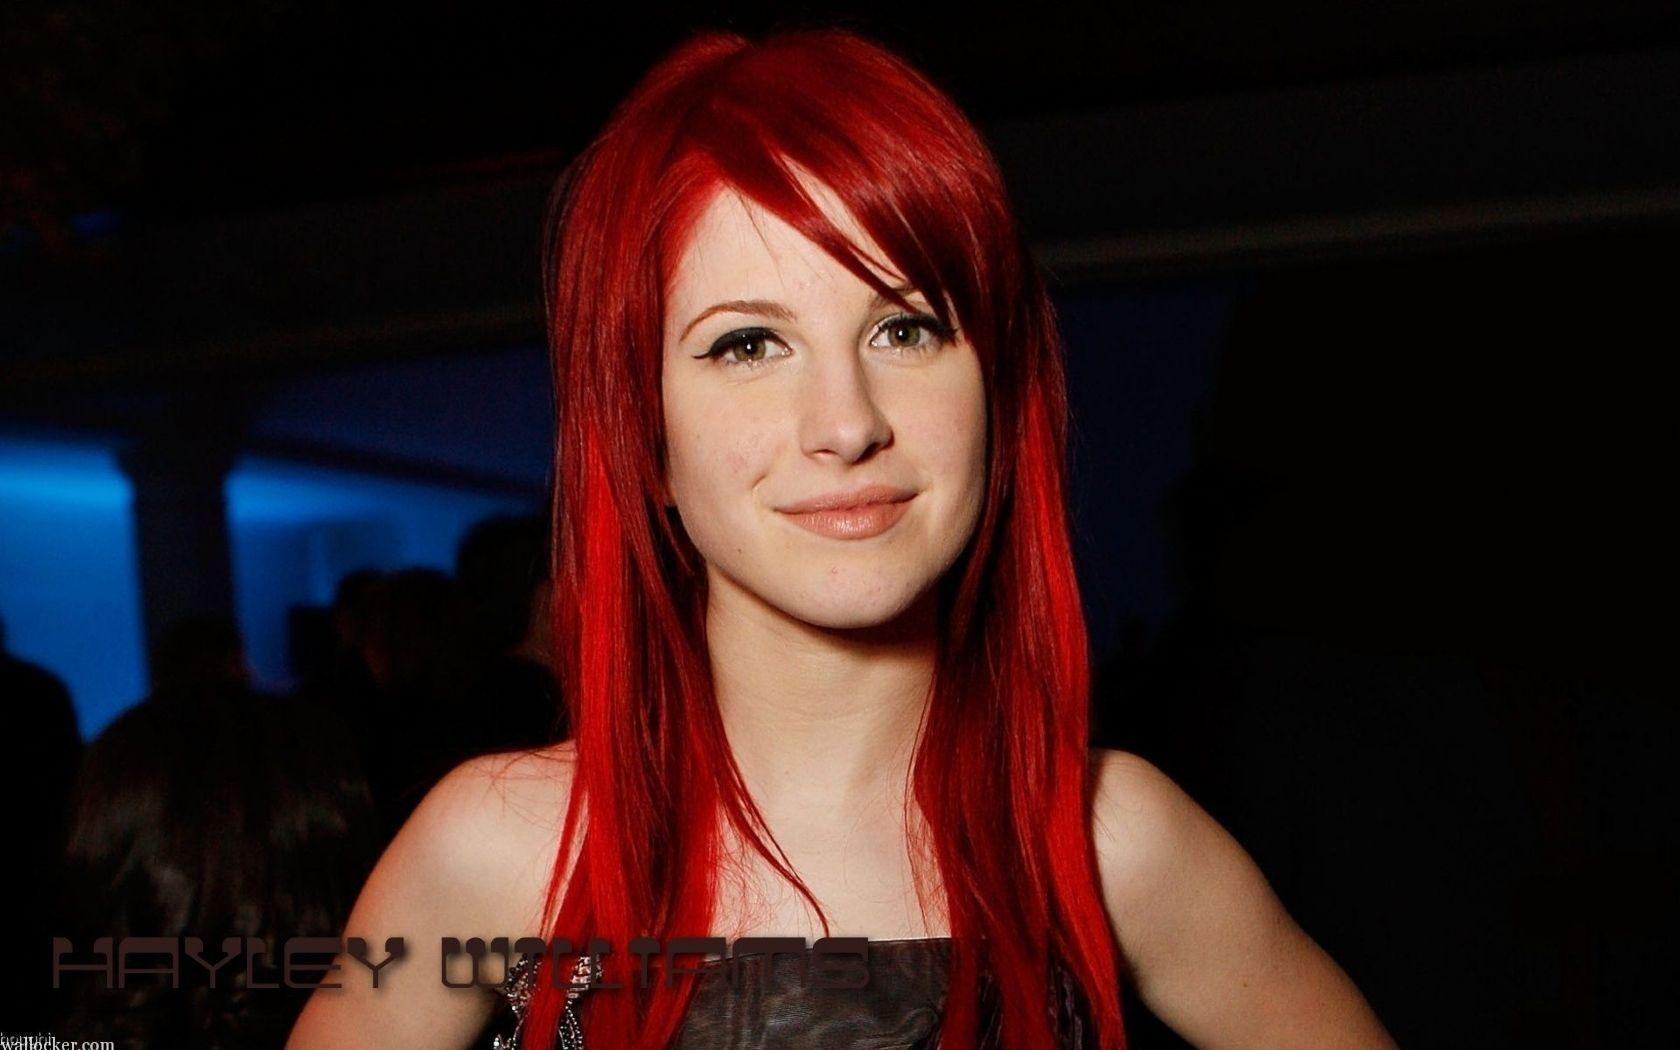 Hayley Williams 2015 Wallpapers - Wallpaper Cave